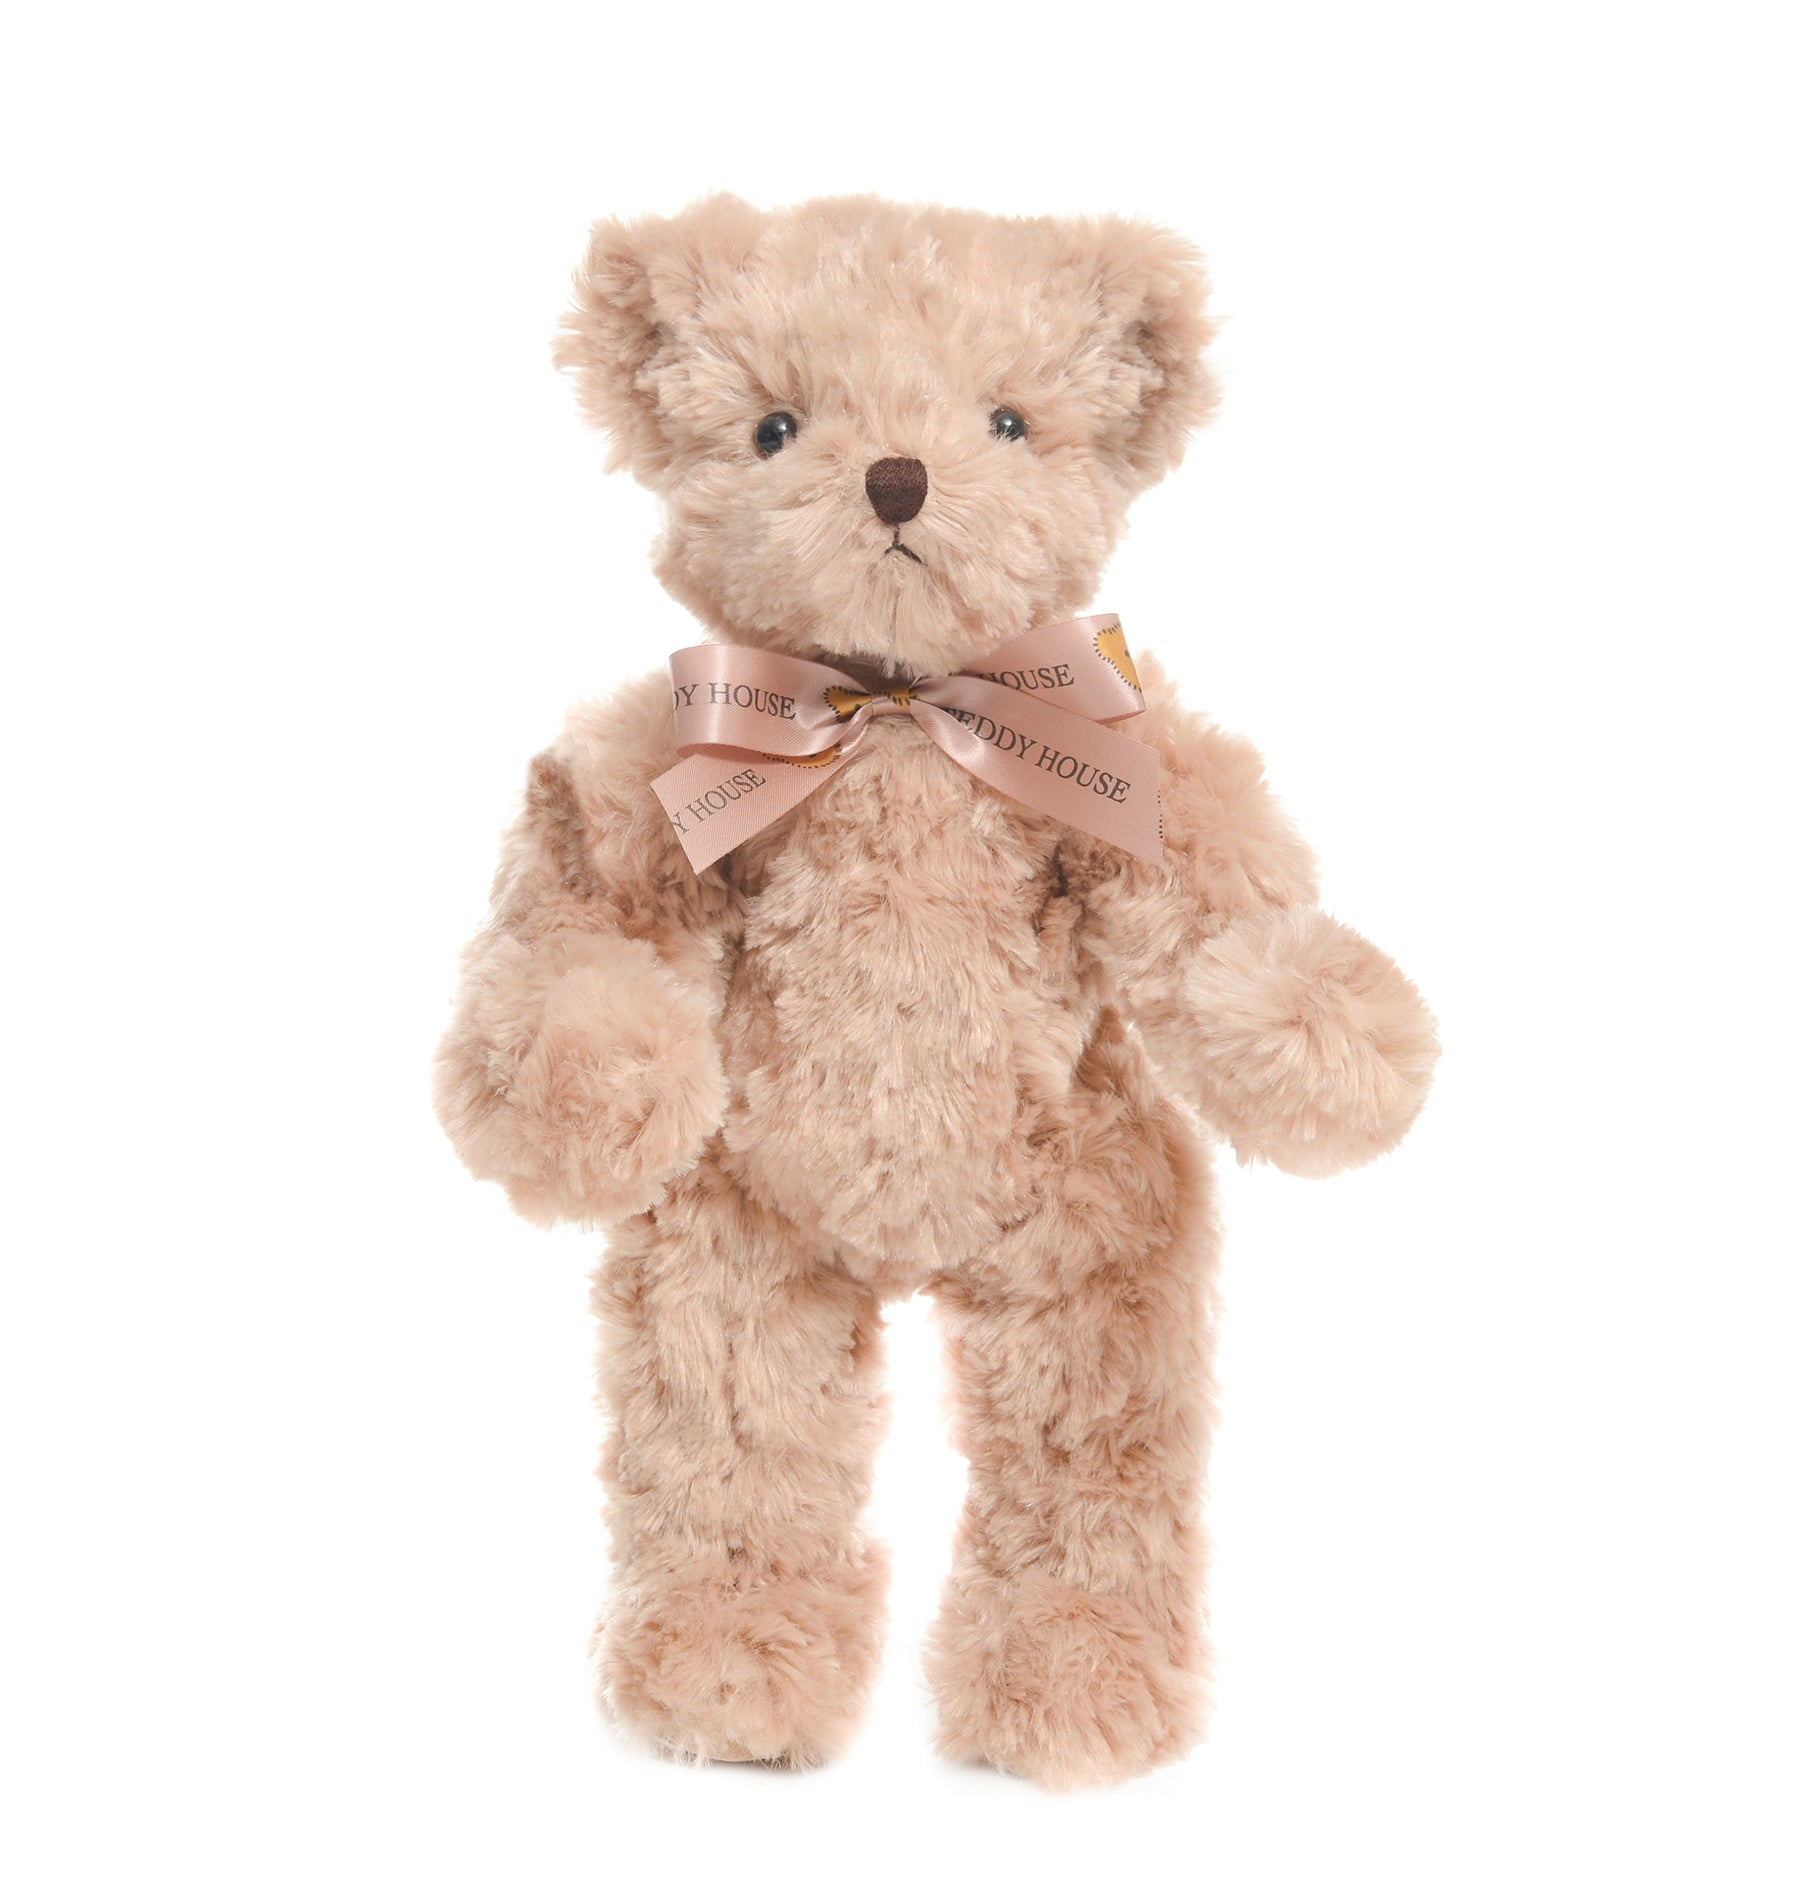 TEDDY HOUSE BONEKA TEDDY BEAR TOM BEAR 12 INCHI